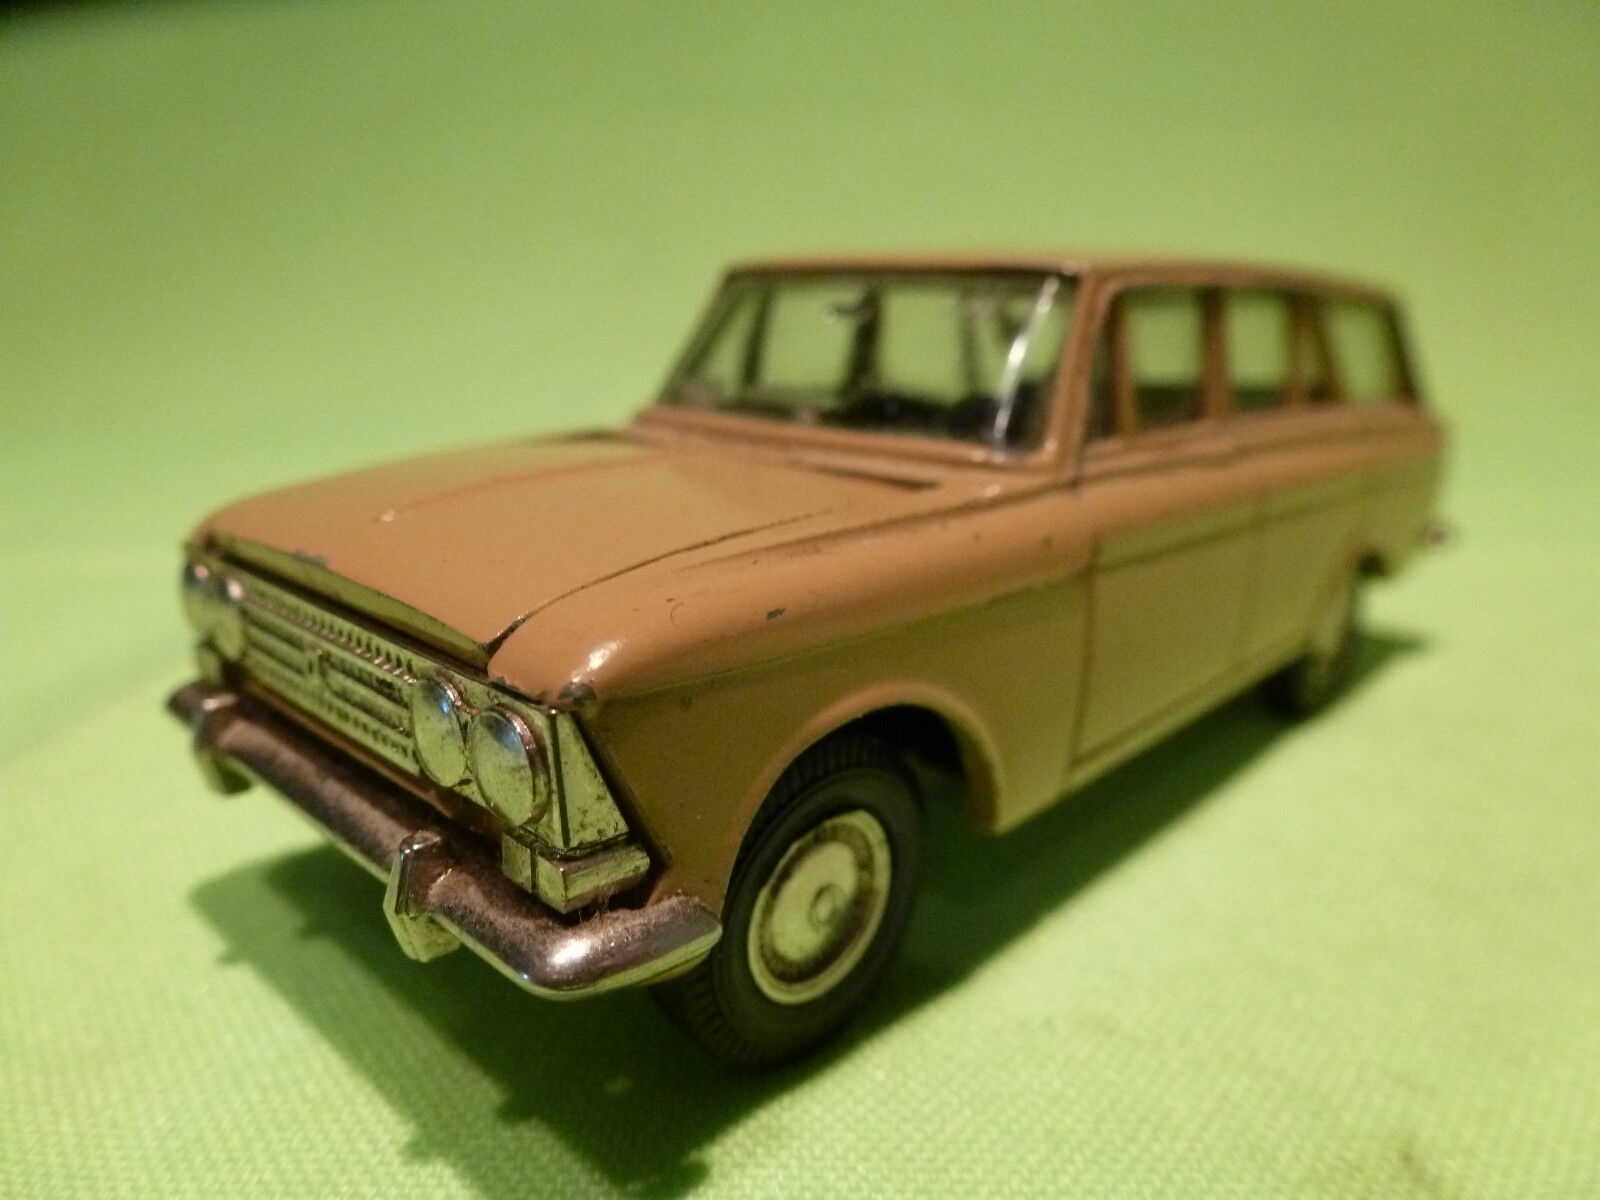 MOSKVITCH    1 43  USSR    RARE SELTEN  -  IN GOOD CONDITION 7ce26e